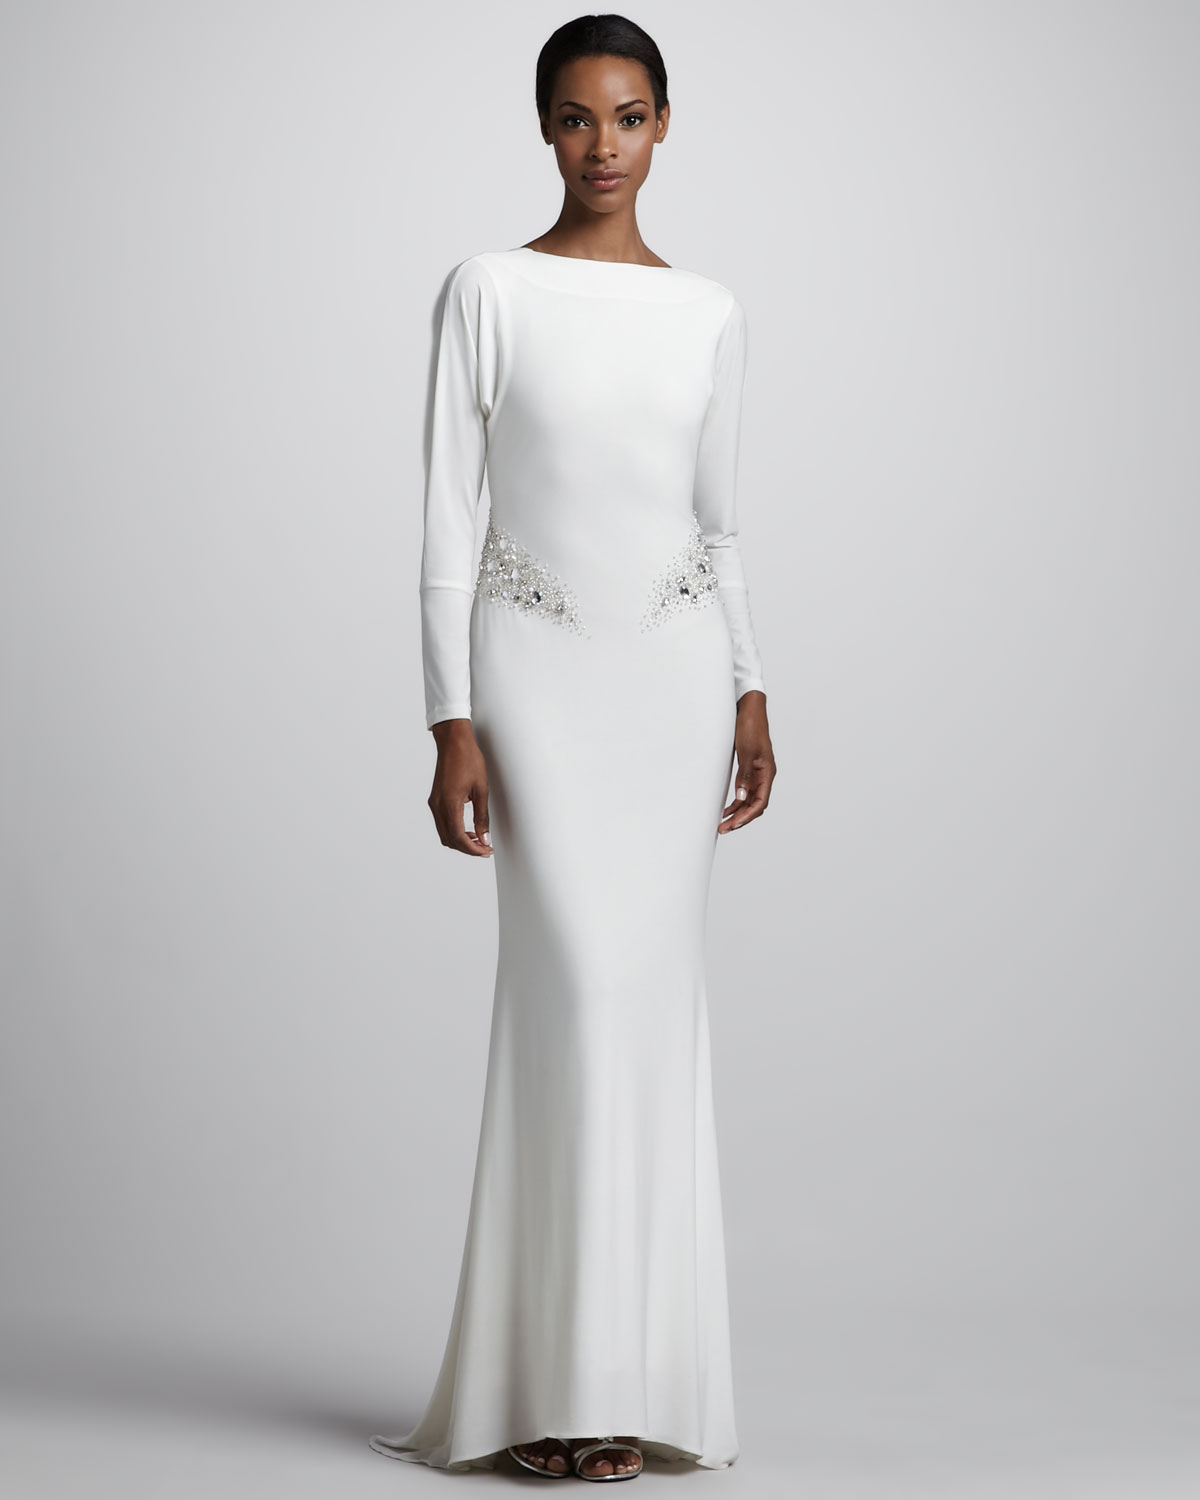 Lyst - Badgley Mischka Long sleeve Jersey Gown in White